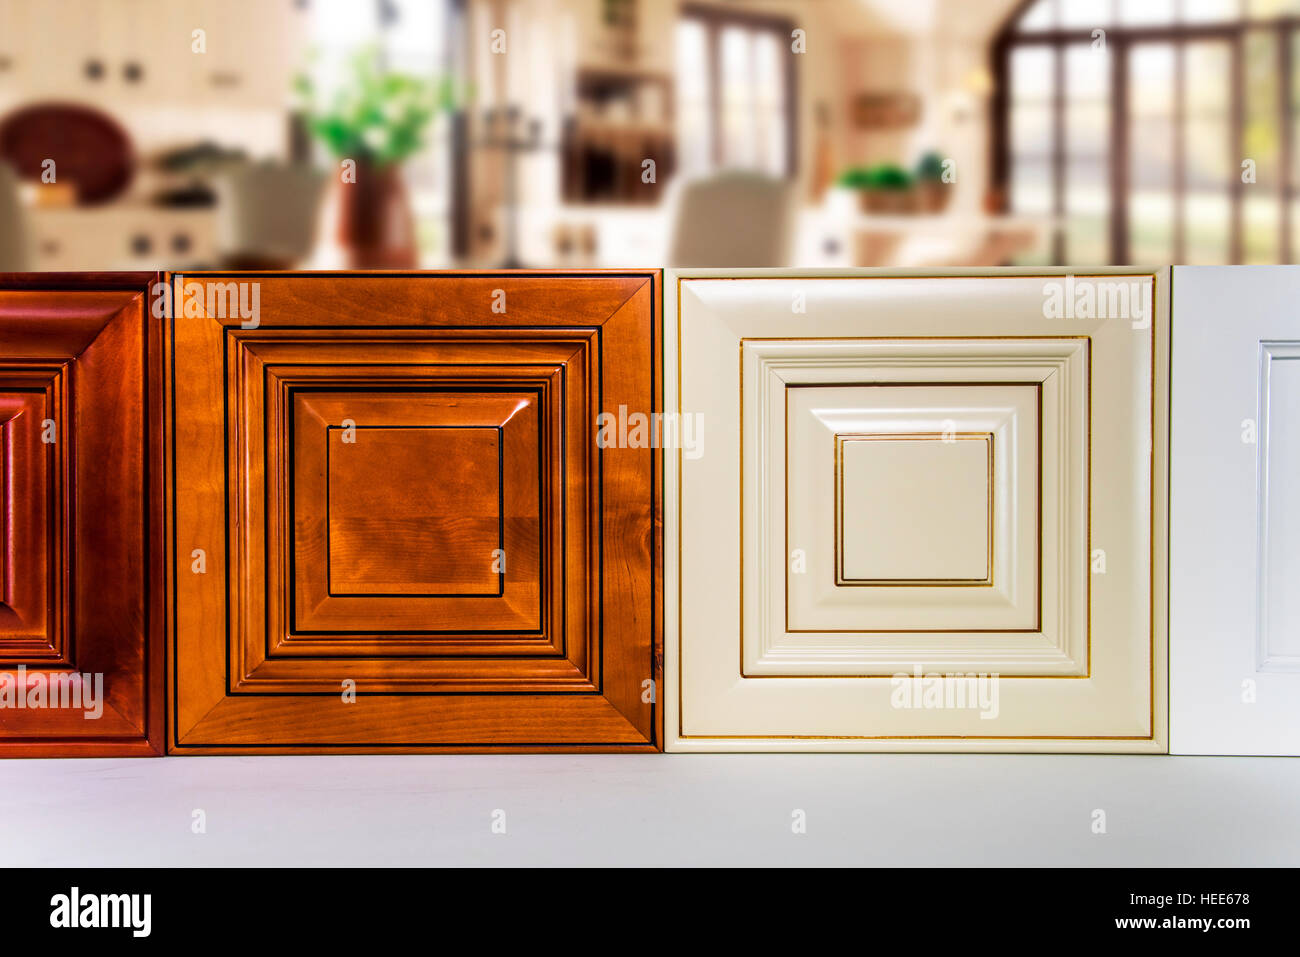 Wood Doors Stockfotos & Wood Doors Bilder - Alamy